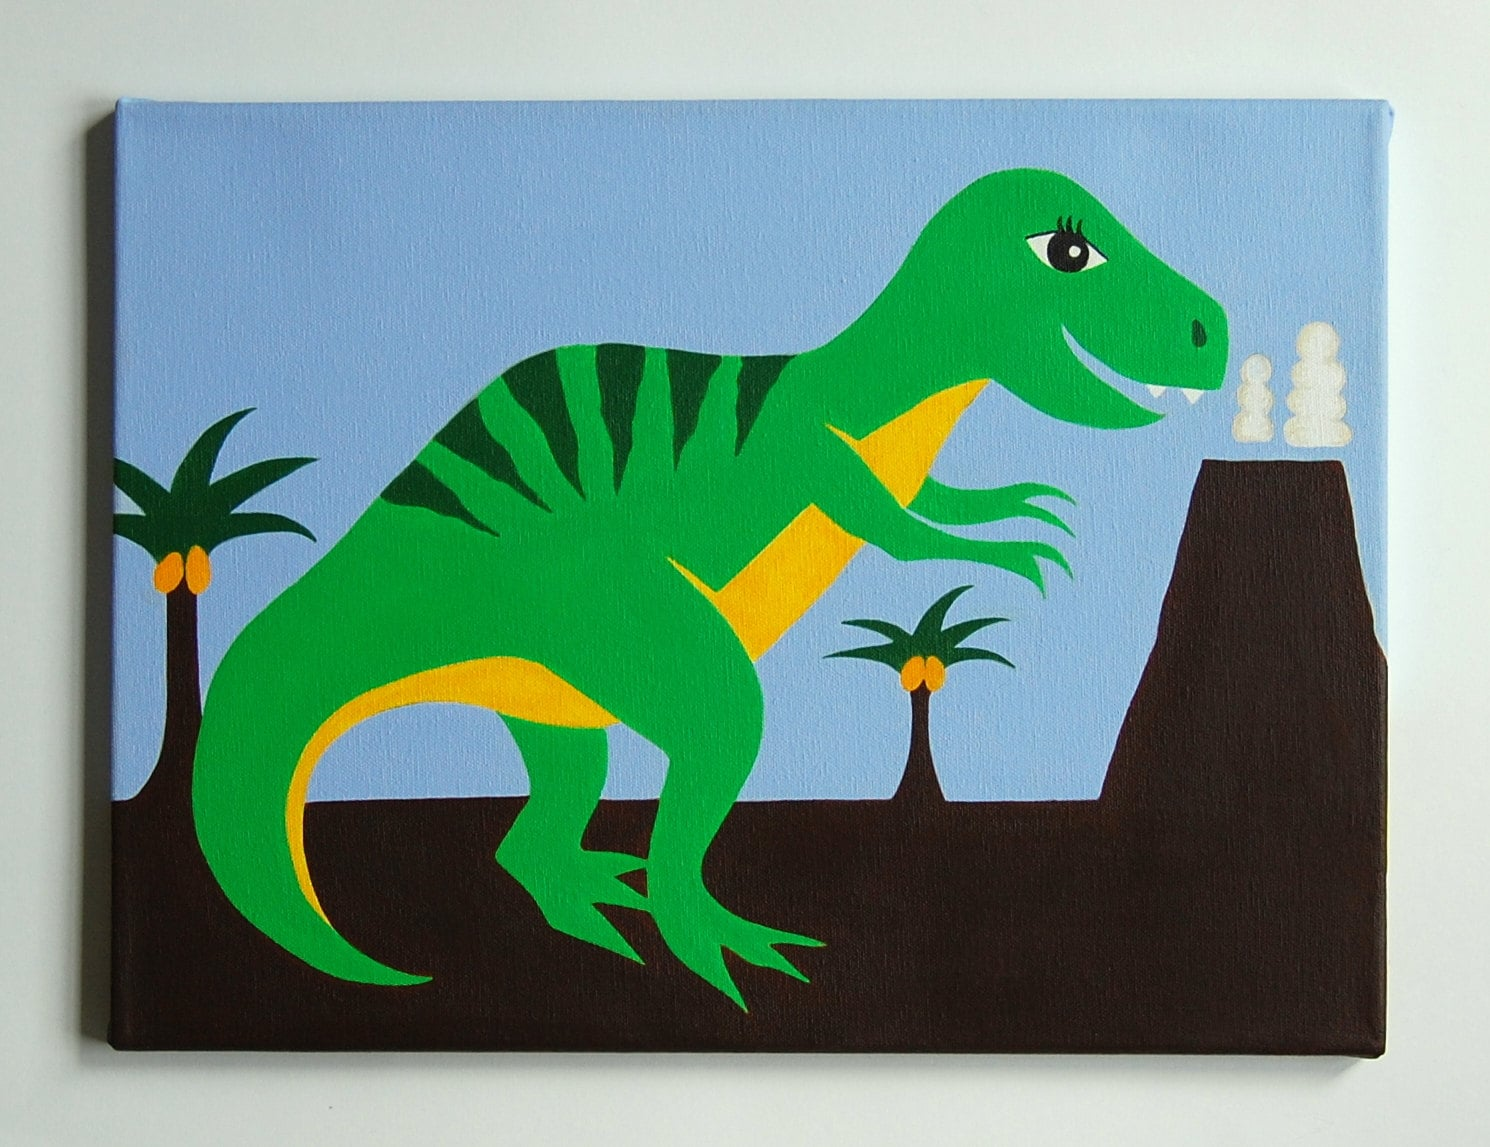 bedroom com dw idea with diy amusing dinosaur images decor room anddinosaur moltqa outstanding wonderful kids me